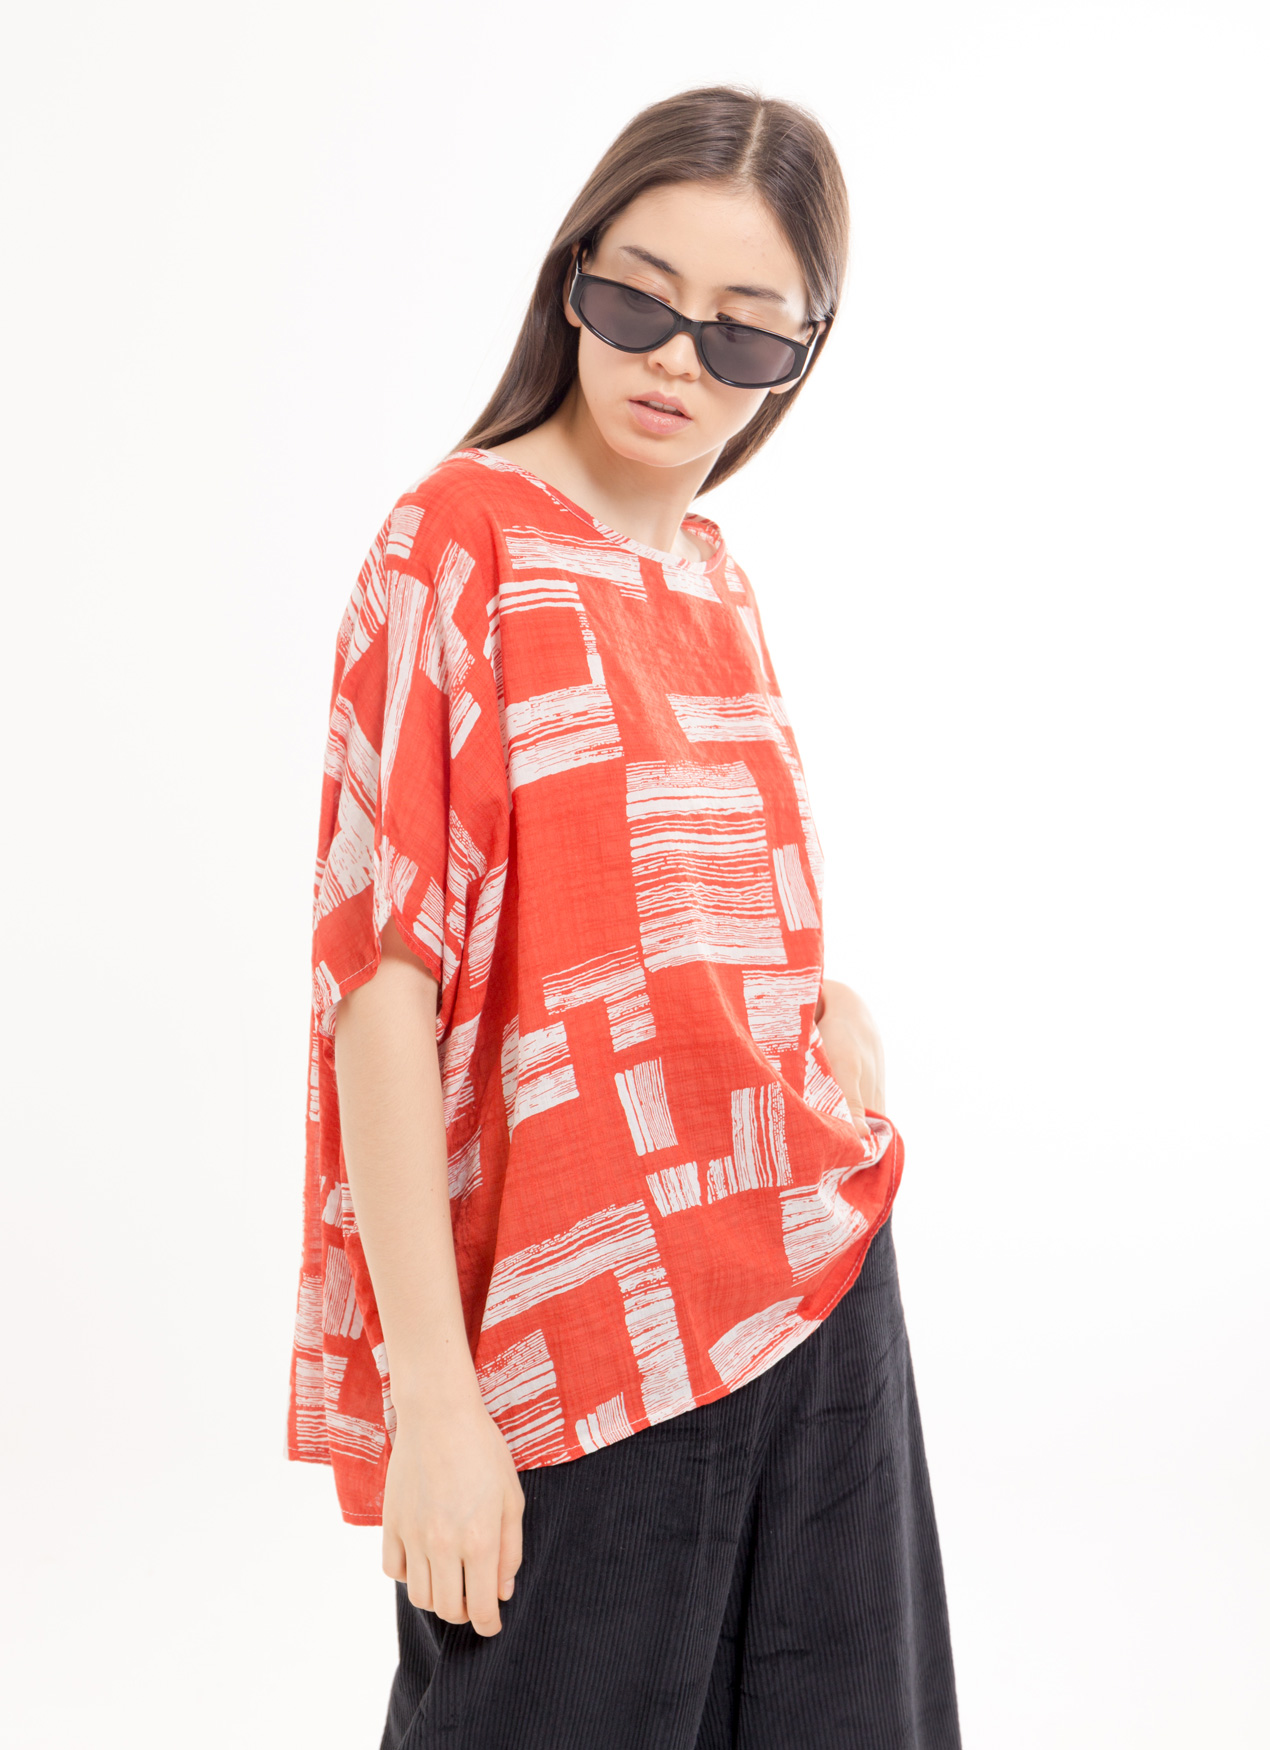 BOWN Shanice Top - Red